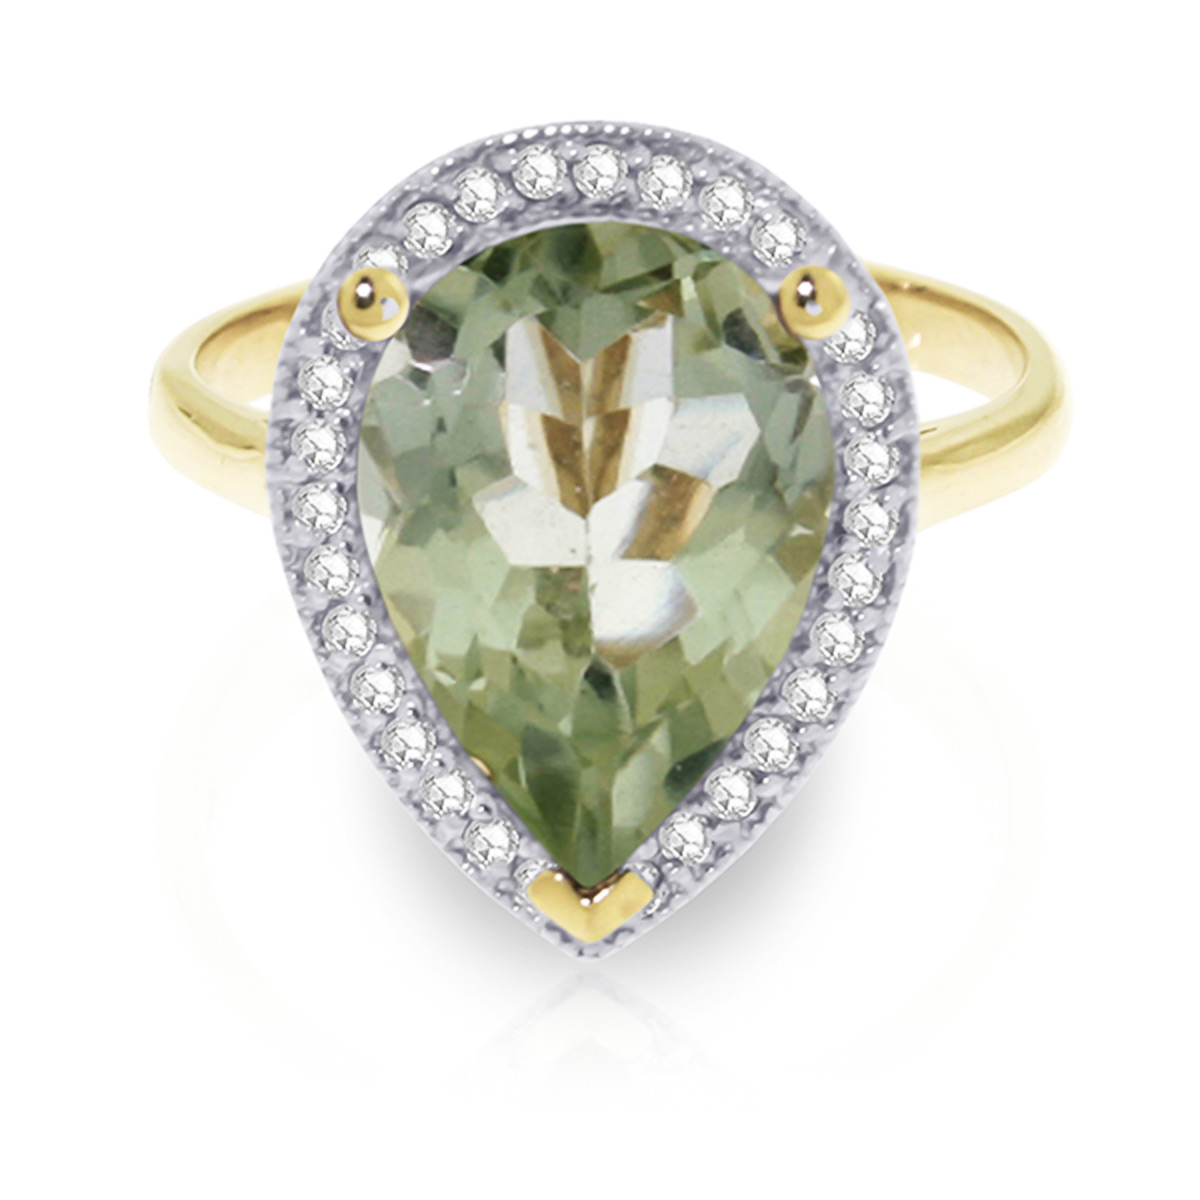 Green Amethyst and Diamond Halo Ring 3.25ct in 9ct Gold